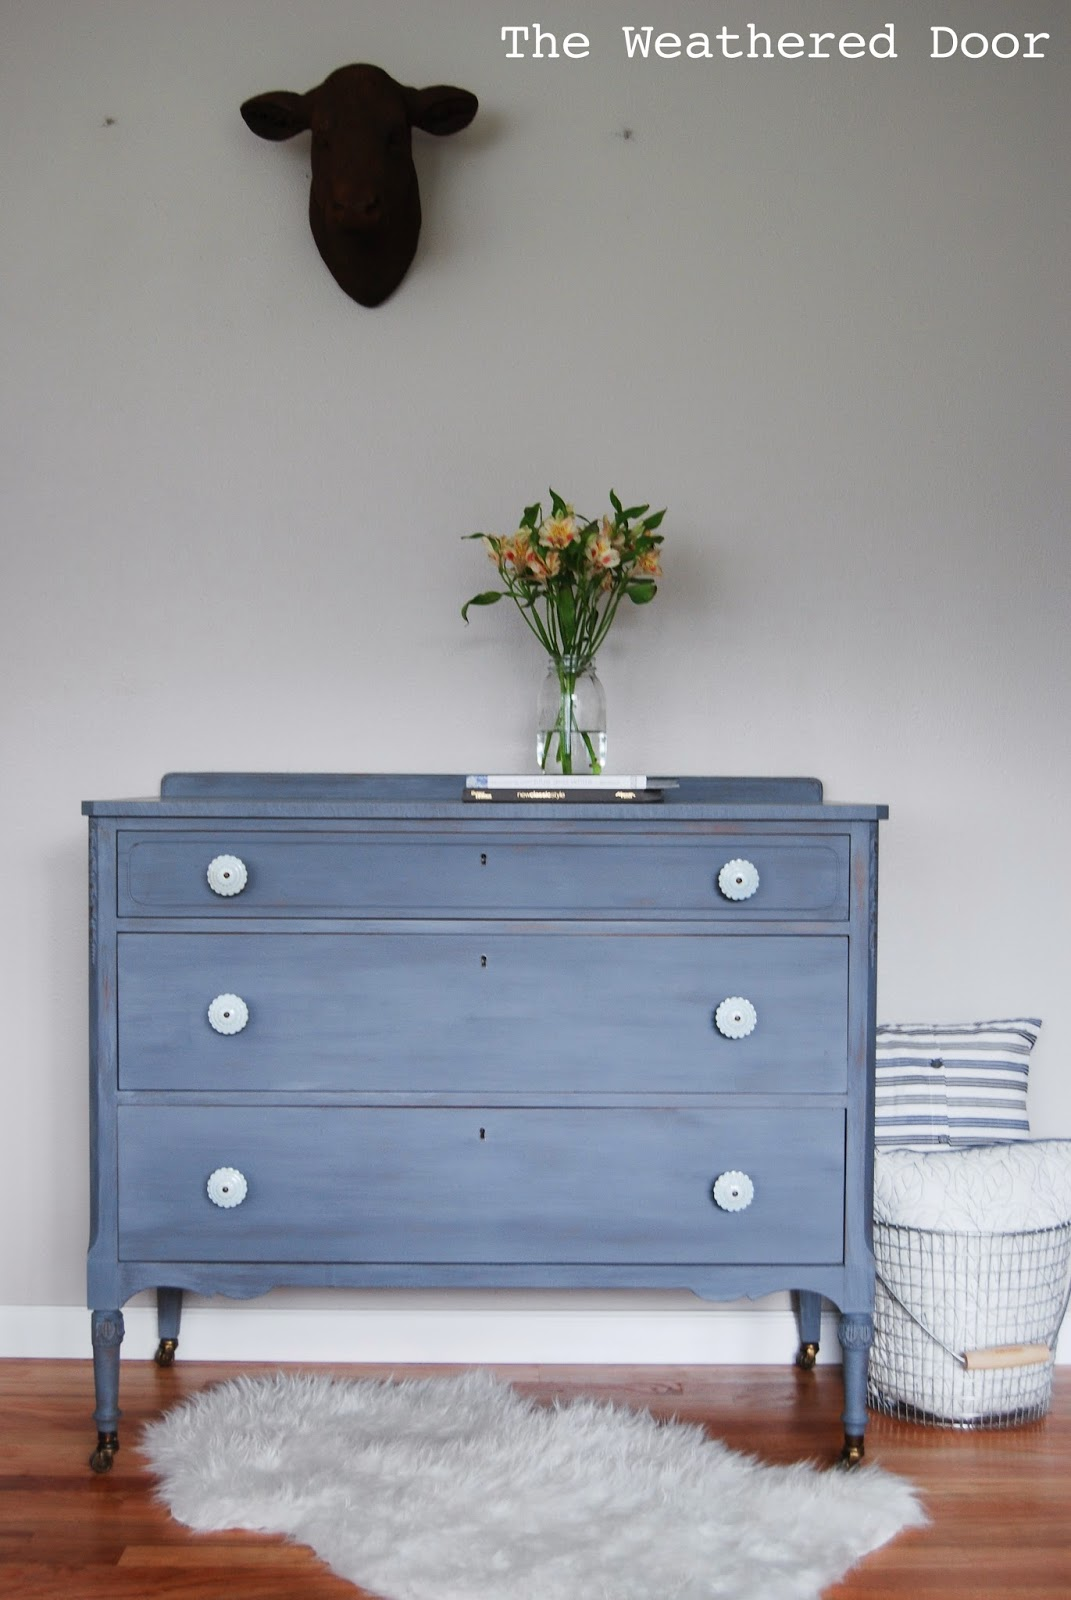 Preferred A grey-blue-purple dresser with soft blue knobs - The Weathered Door OI04